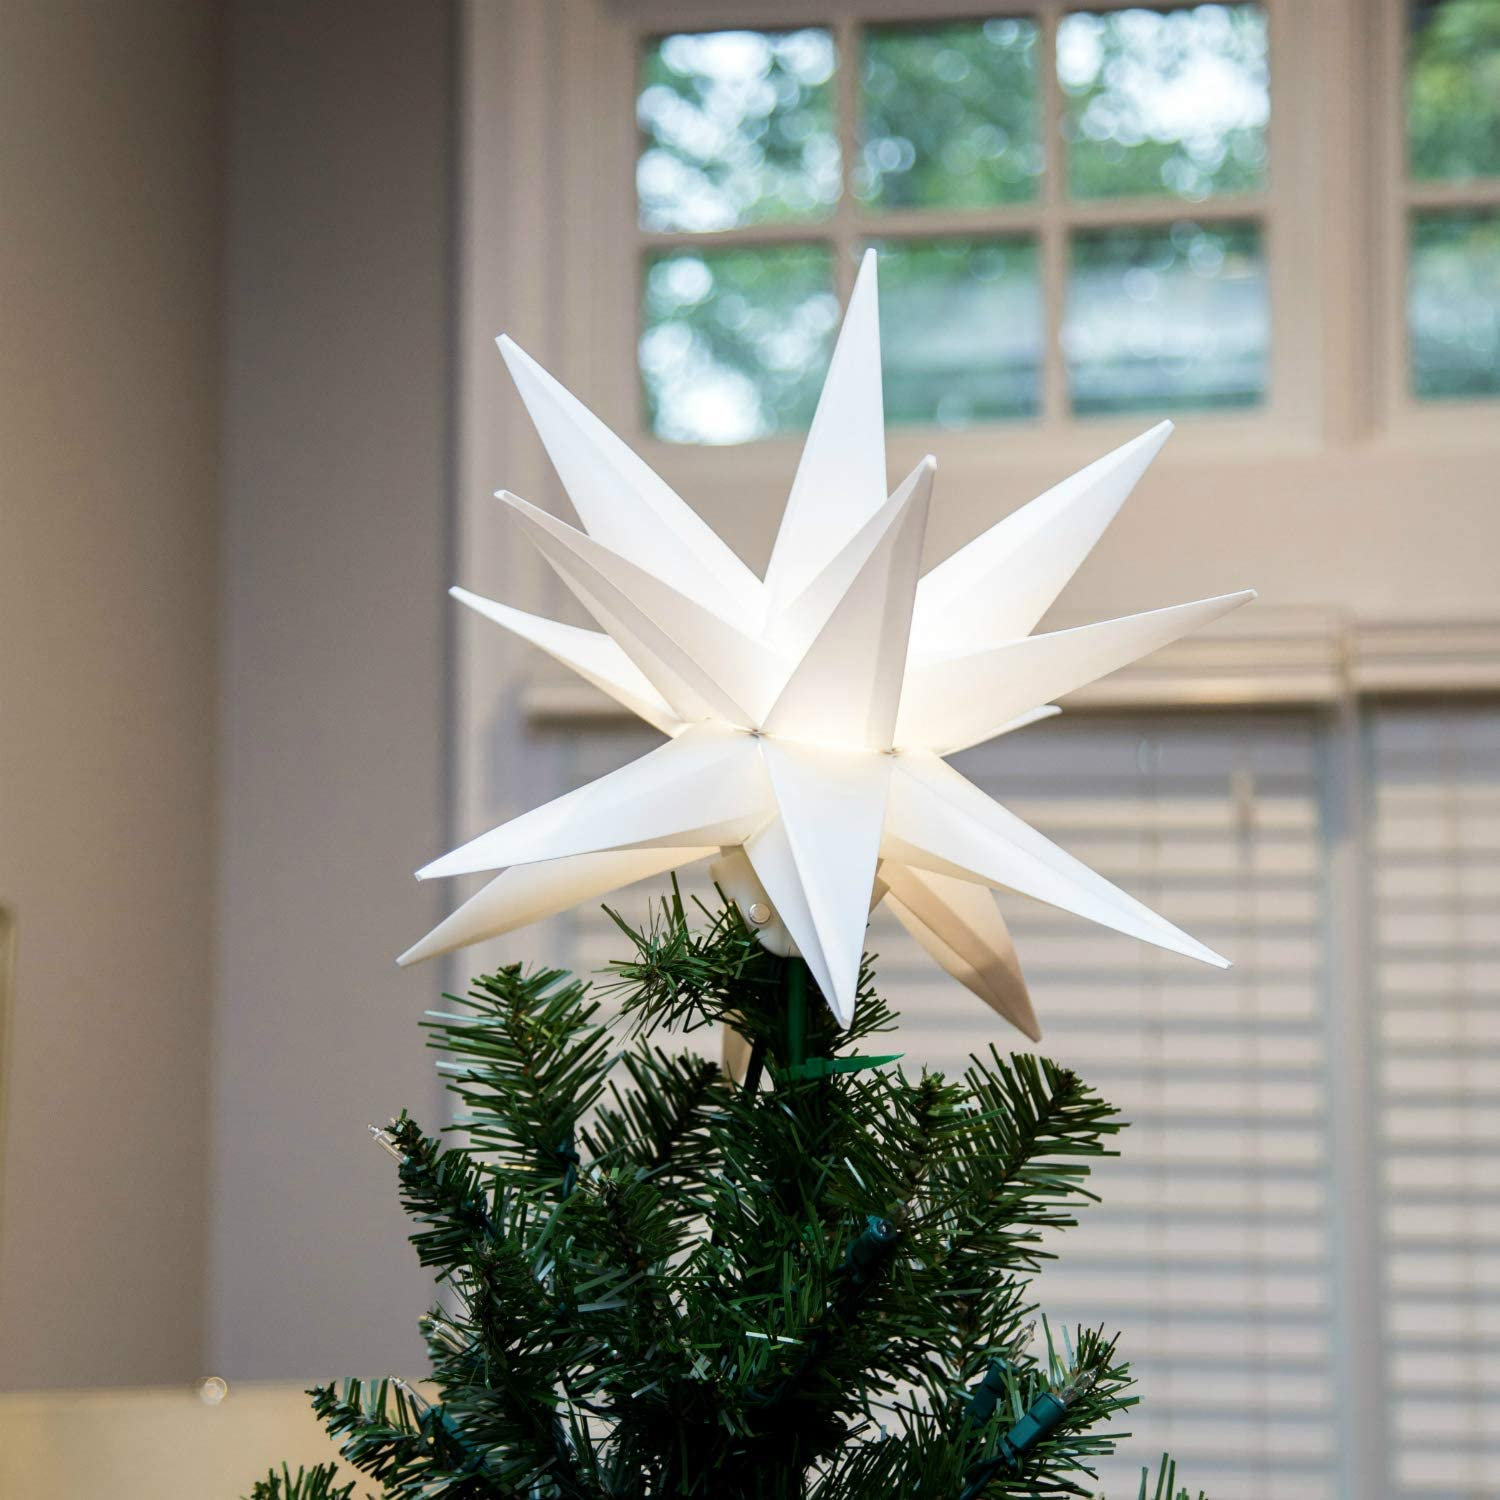 Amazon Com Elf Logic 12 Moravian Star Tree Topper New 2020 Model No Assembly Required Beautiful Bright White 3d Lighted Christmas Star Tree Topper 12 Inch Folding Led Kitchen Dining